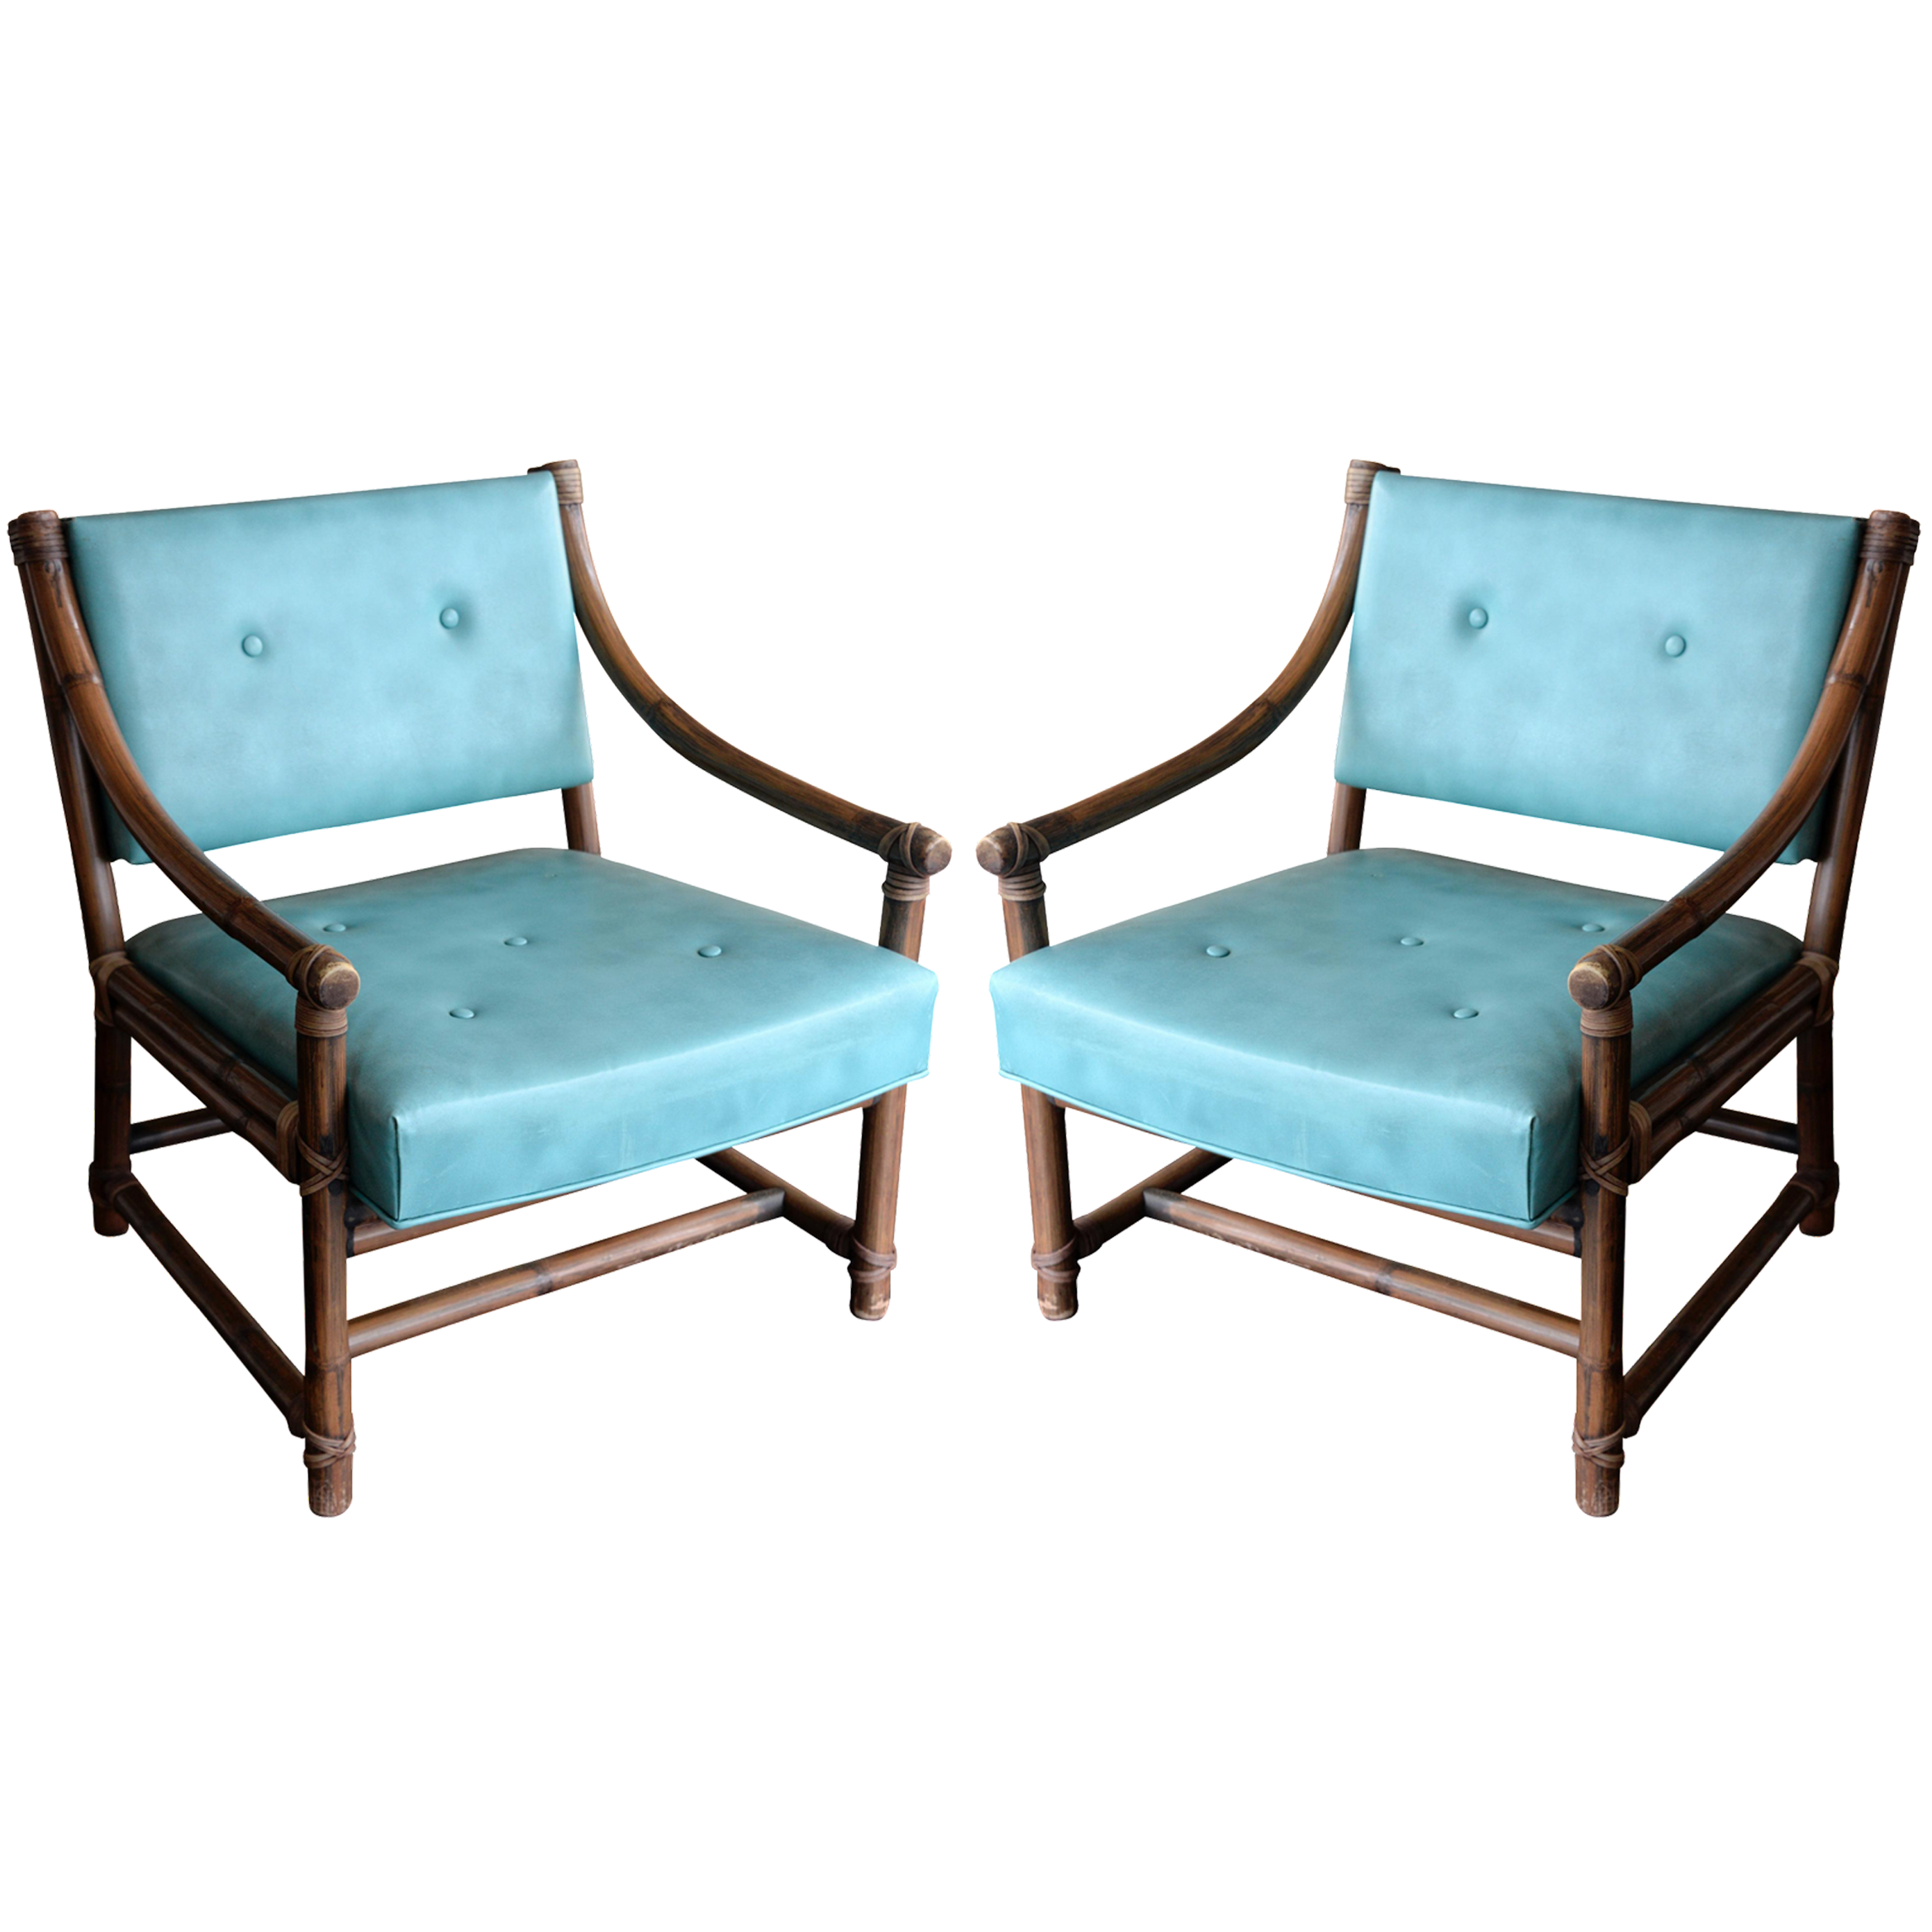 Mcguire Bamboo Leather Rawhide Chairs A Pair Chairish